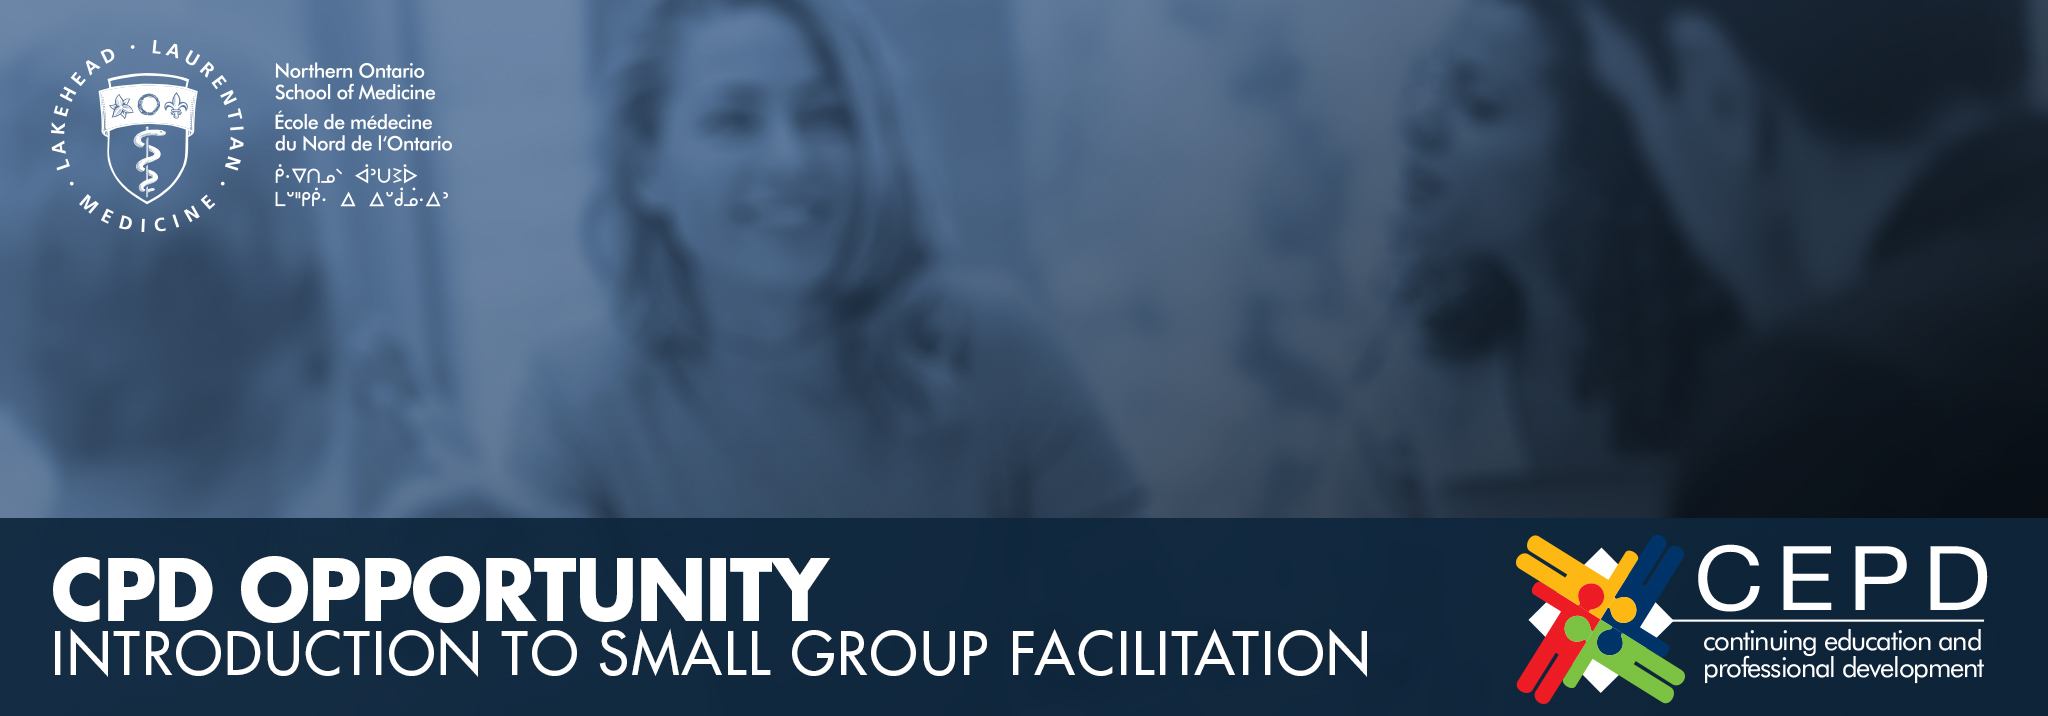 Introduction to Small Group Facilitation